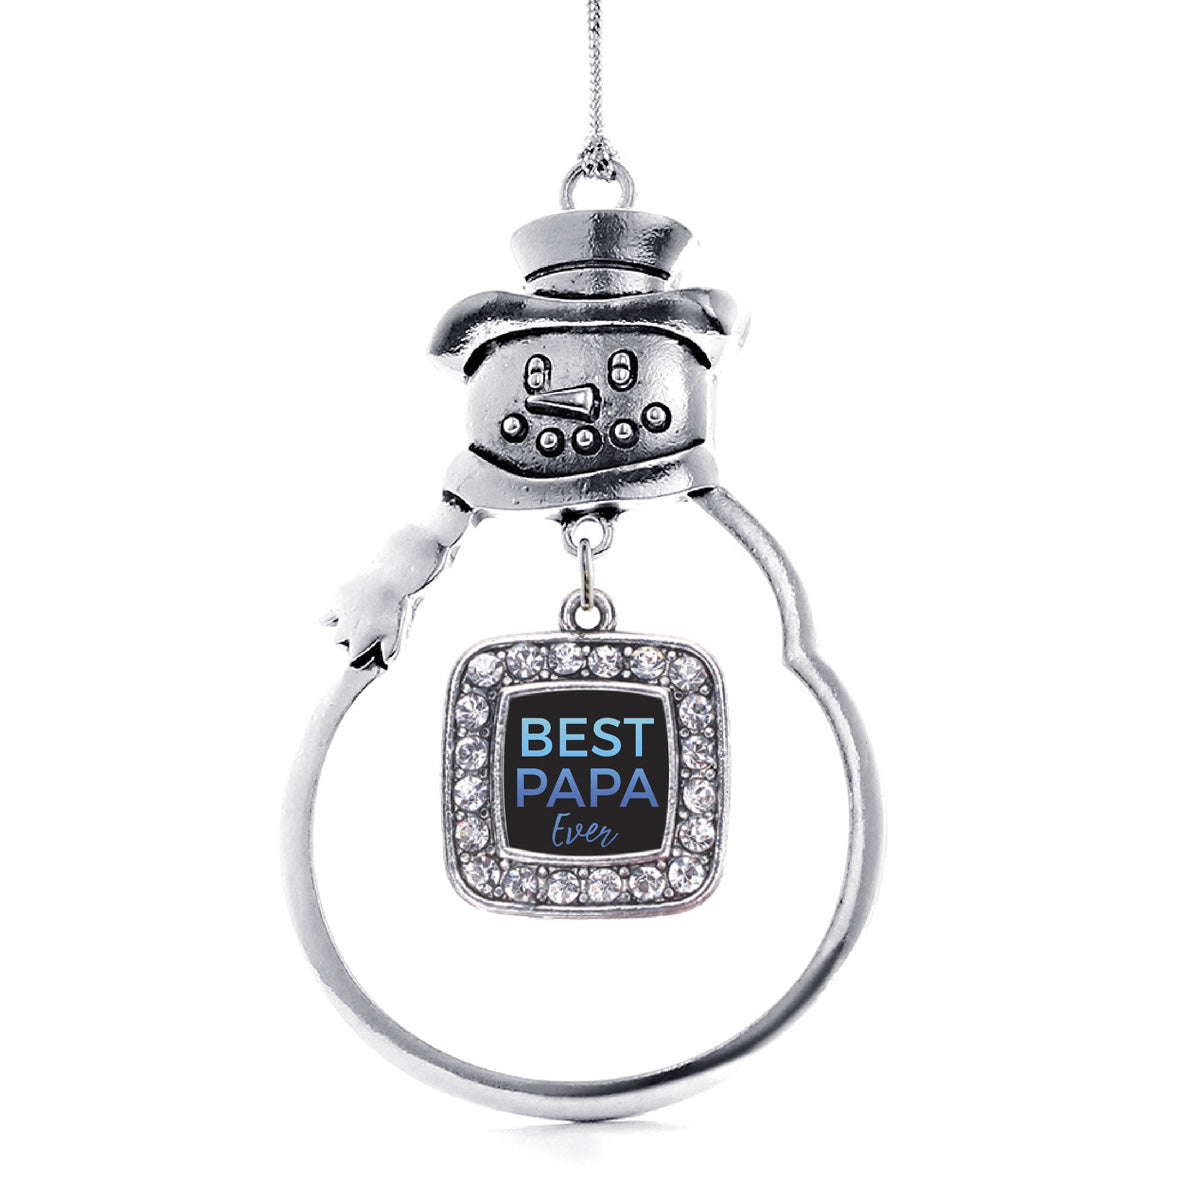 Best Papa Ever Square Charm Christmas / Holiday Ornament